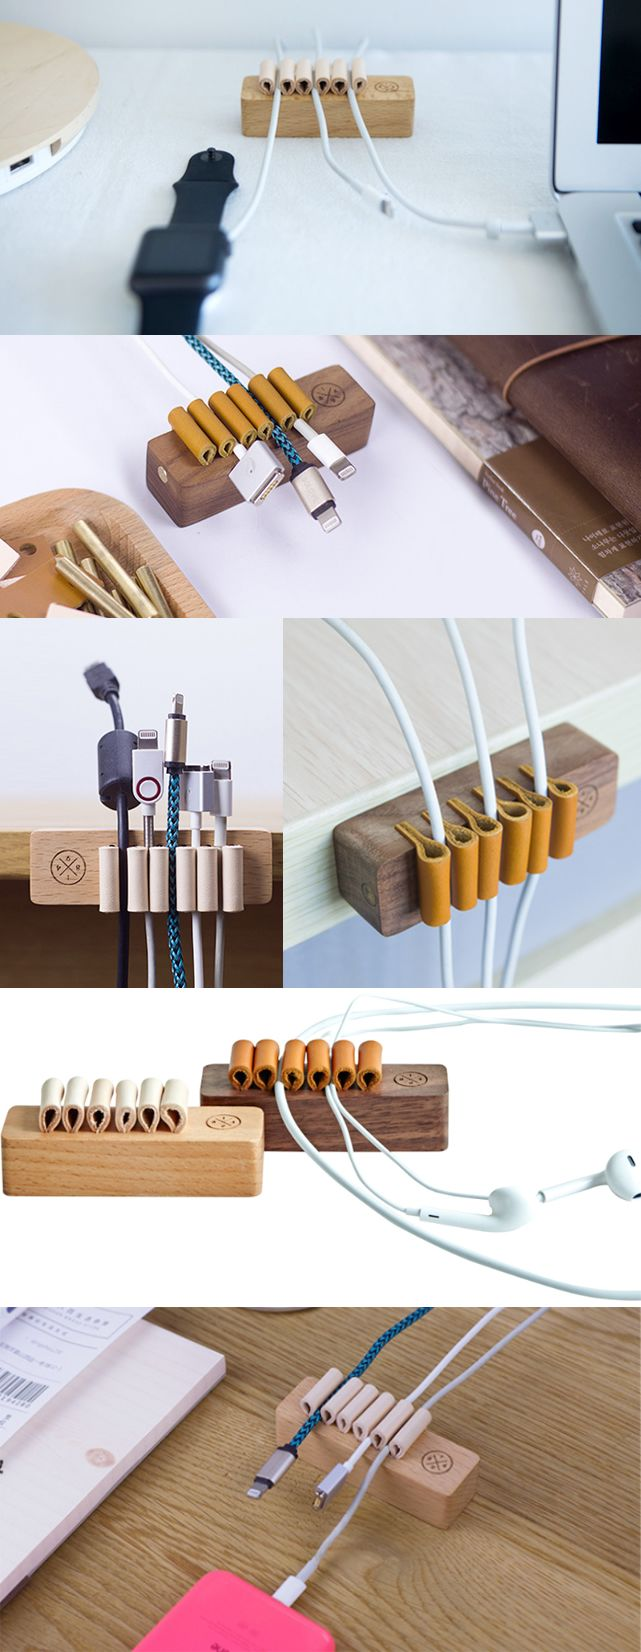 Wooden Wood Desk Cord Cable Clip Holder Cord Organizer Manager Management System Power Cords And Charging Cable